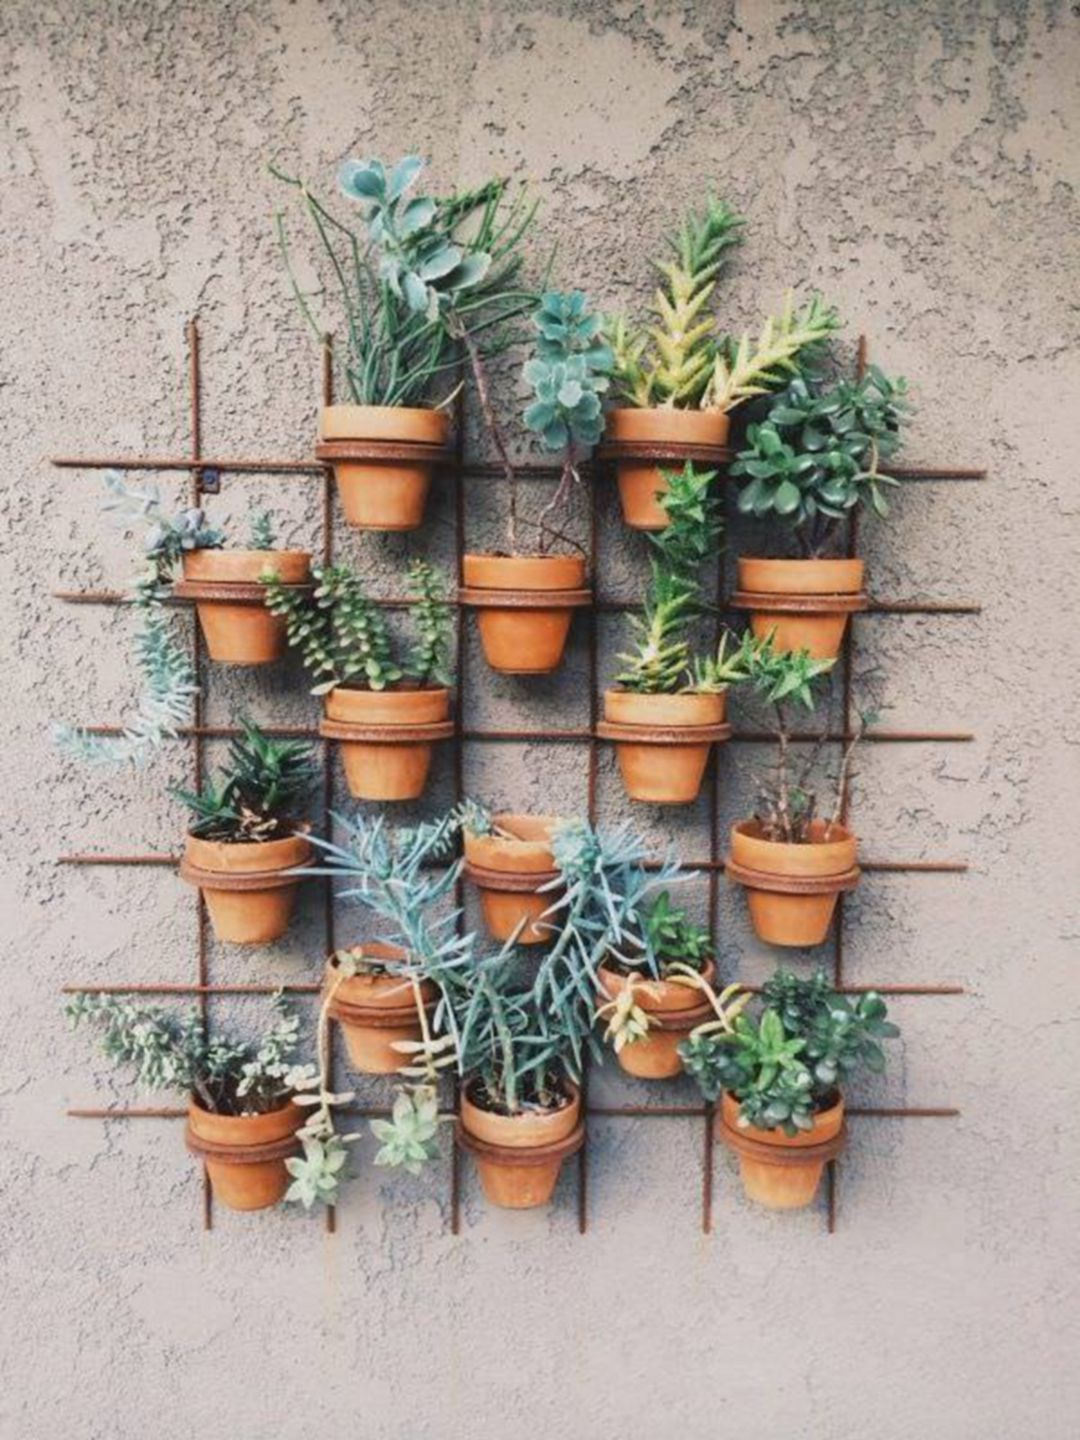 stunning vertical garden ideas to make your home fresh and cool